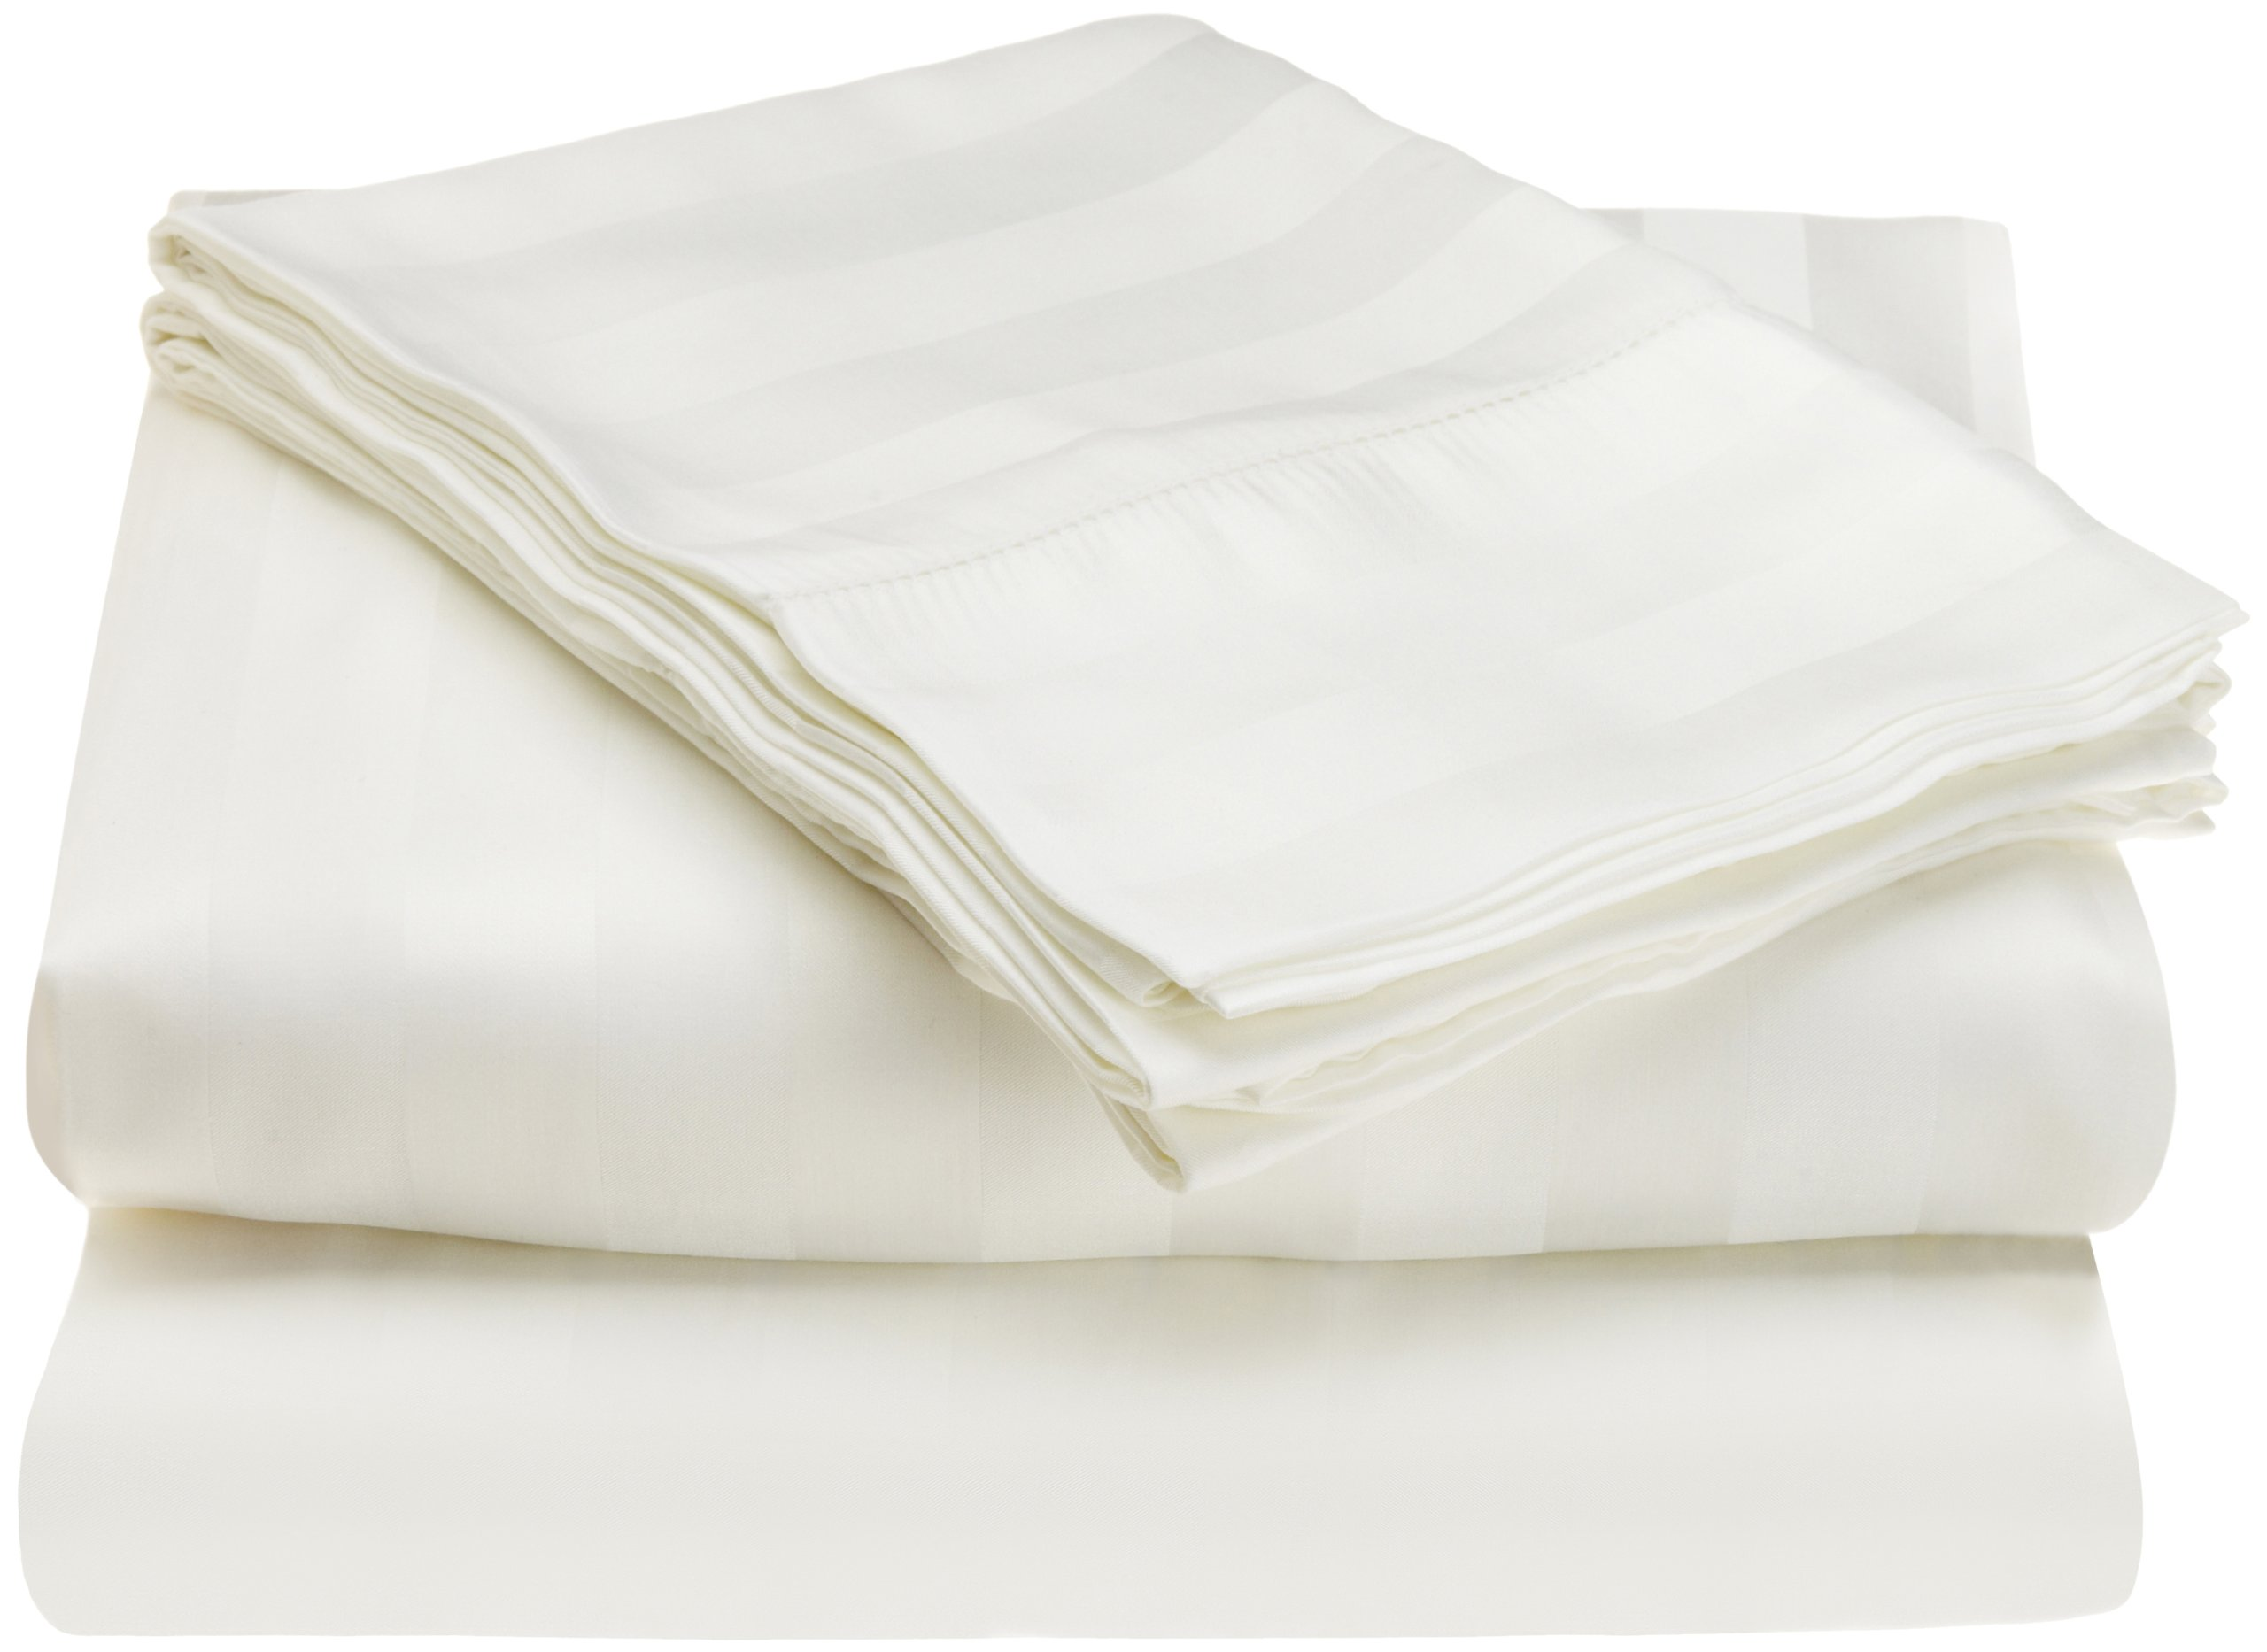 Tuscany Fine Linens Livorno 100-Percent Beechwood Modal Cal King Sheet Set, White by Tuscany Fine Linens (Image #1)